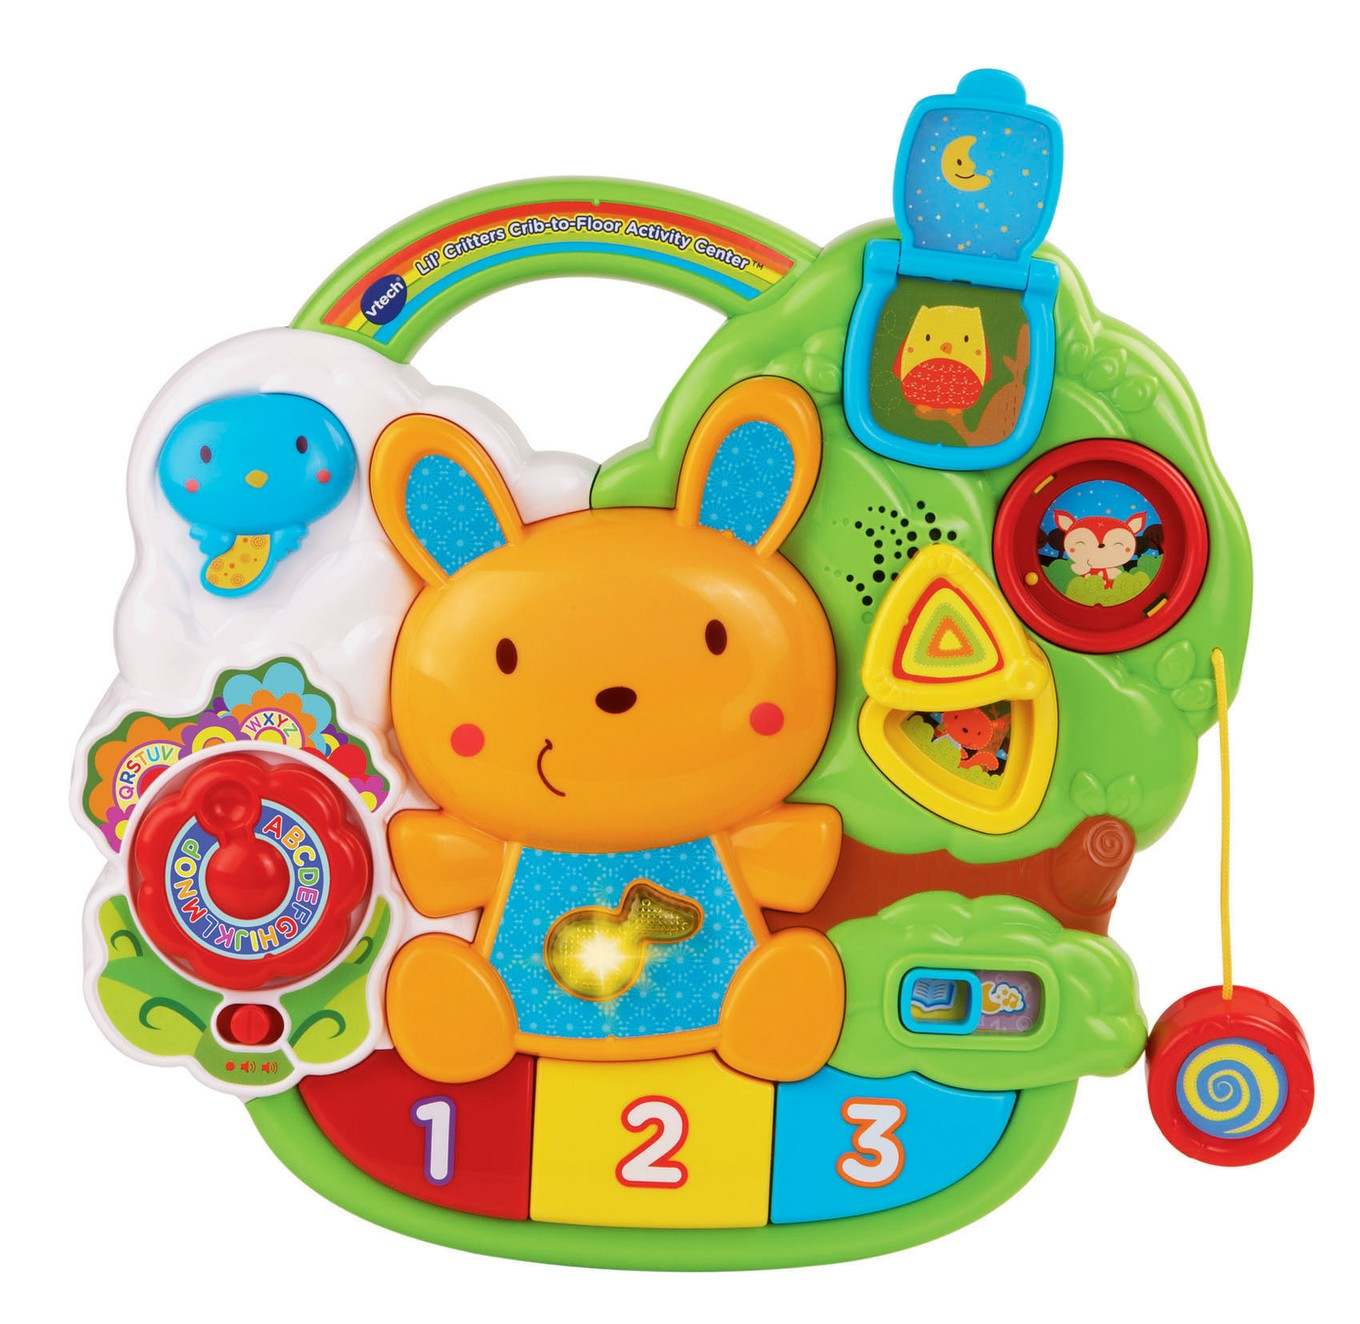 Walmart Baby Toys 12 Months : Lil critters crib to floor activity center І vtechkids